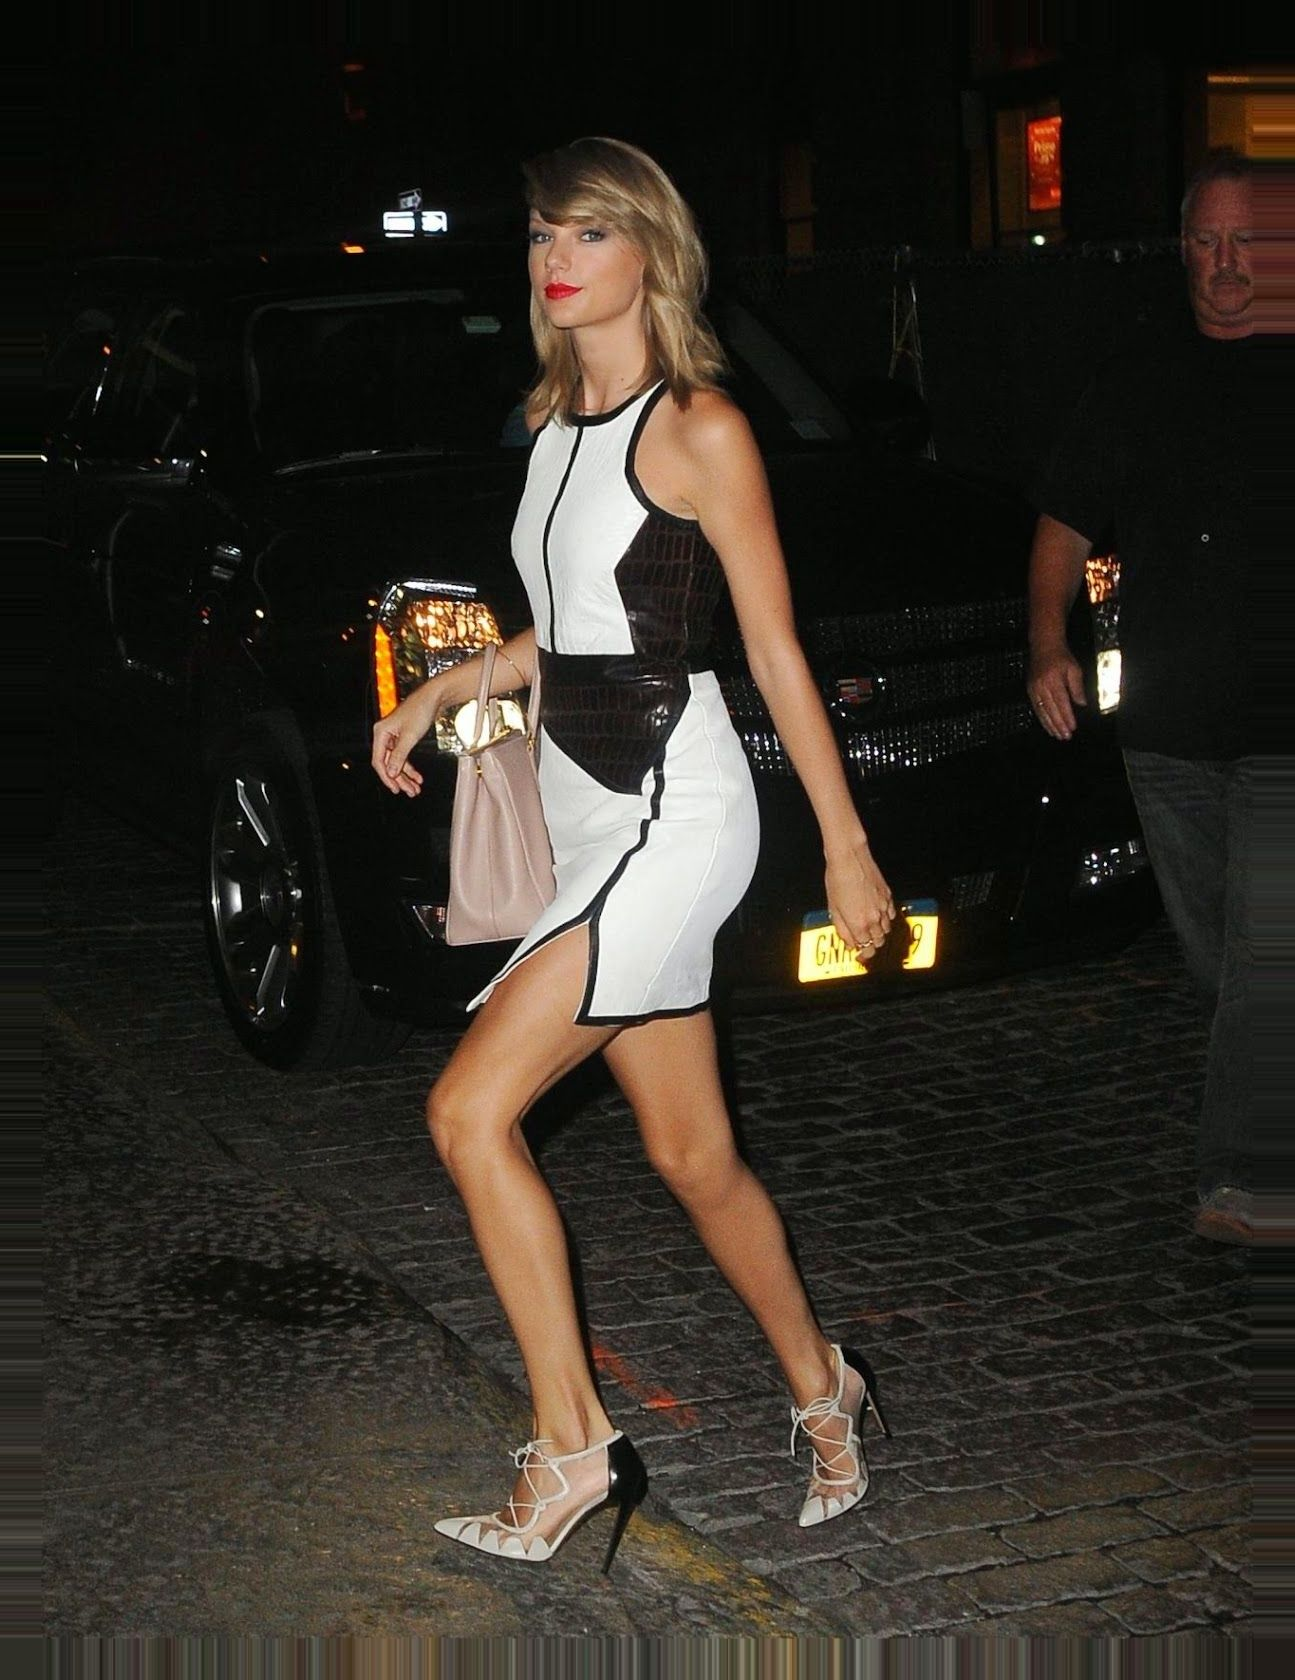 , Taylor Swift flaunts a Jonathan Simkhai dress out and about in Soho – My Pop Star Kda Blog, My Pop Star Kda Blog, My Pop Star Kda Blog